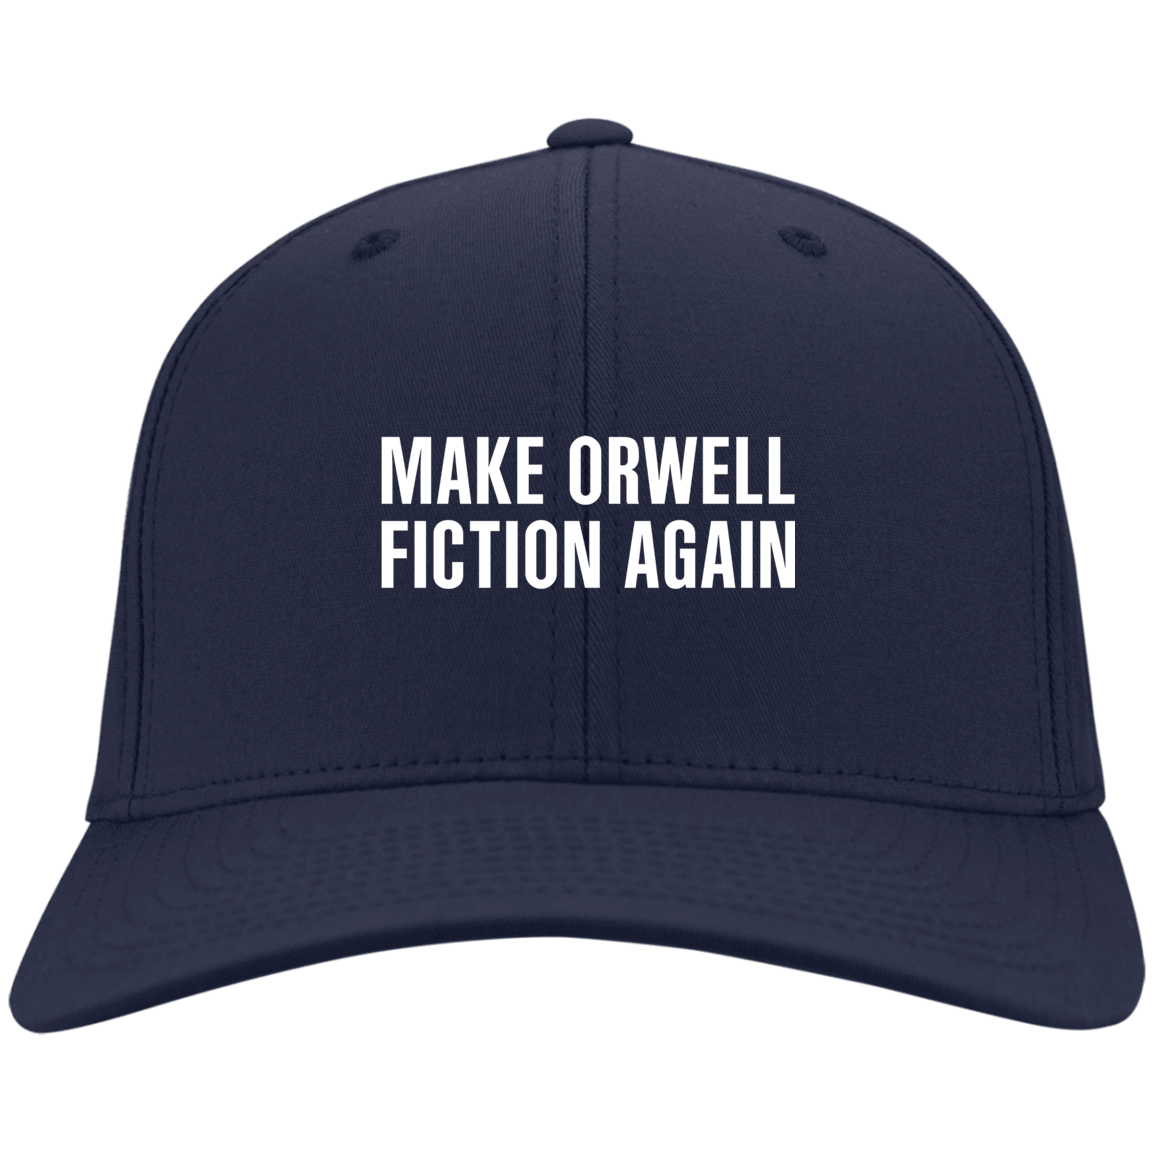 Make Orwell Fiction Again Hat 10-57-74169573-87 - Tee Ript